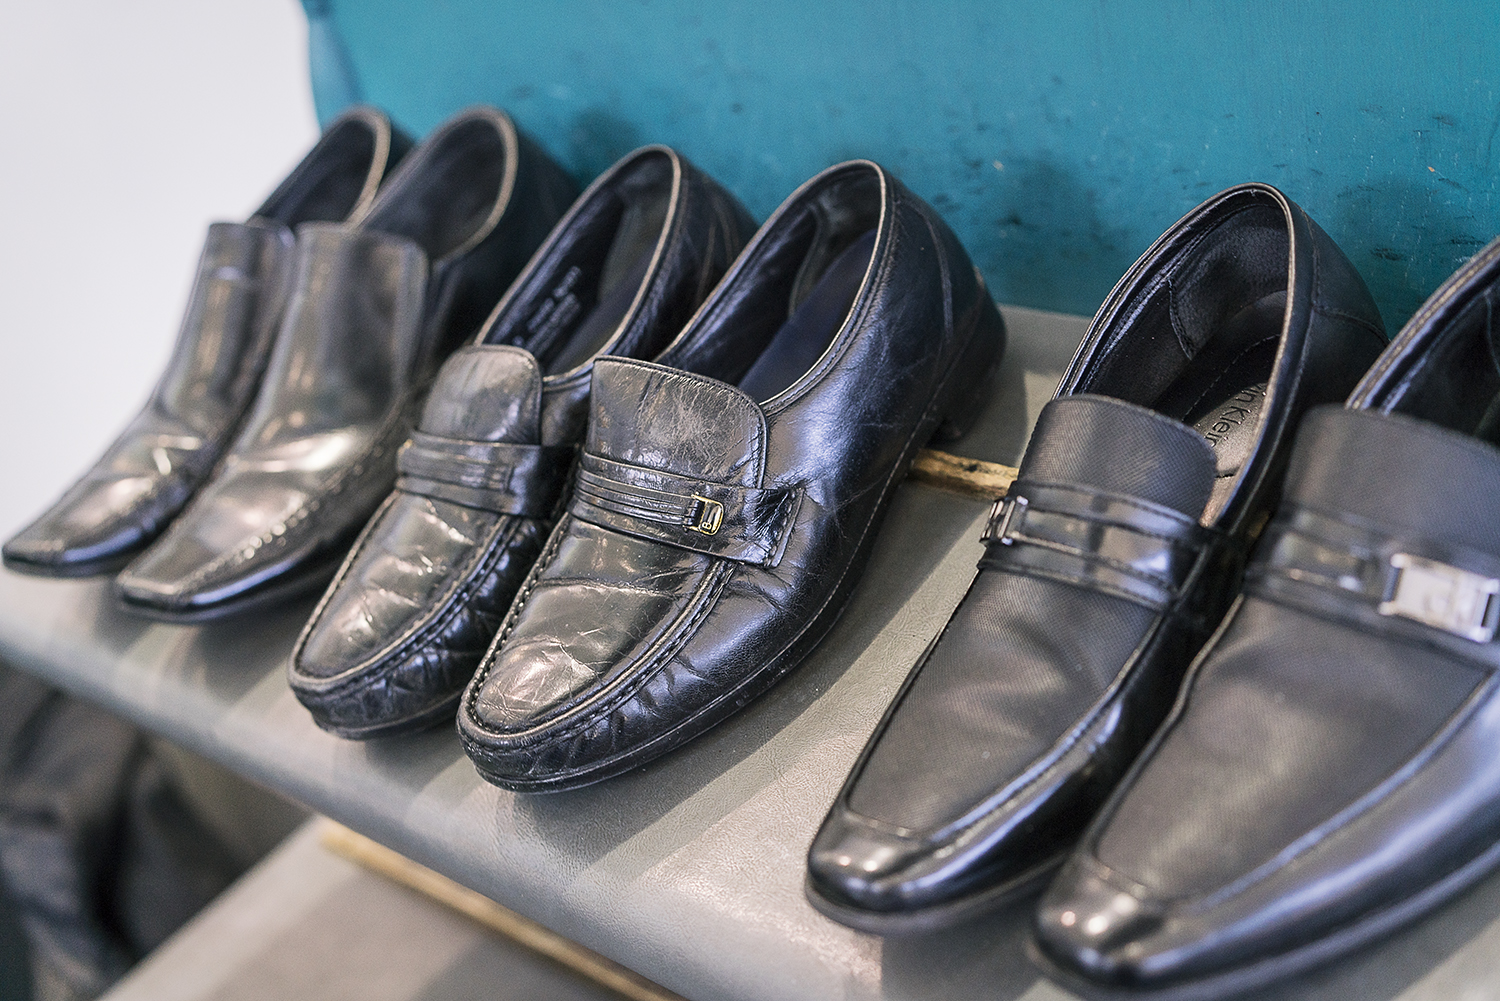 Flint, MI - Friday, January 26, 2018: Customers' shoes wait for attention at the shoe shine stand at Bishop International Airport.Tim Galloway for FlintSide